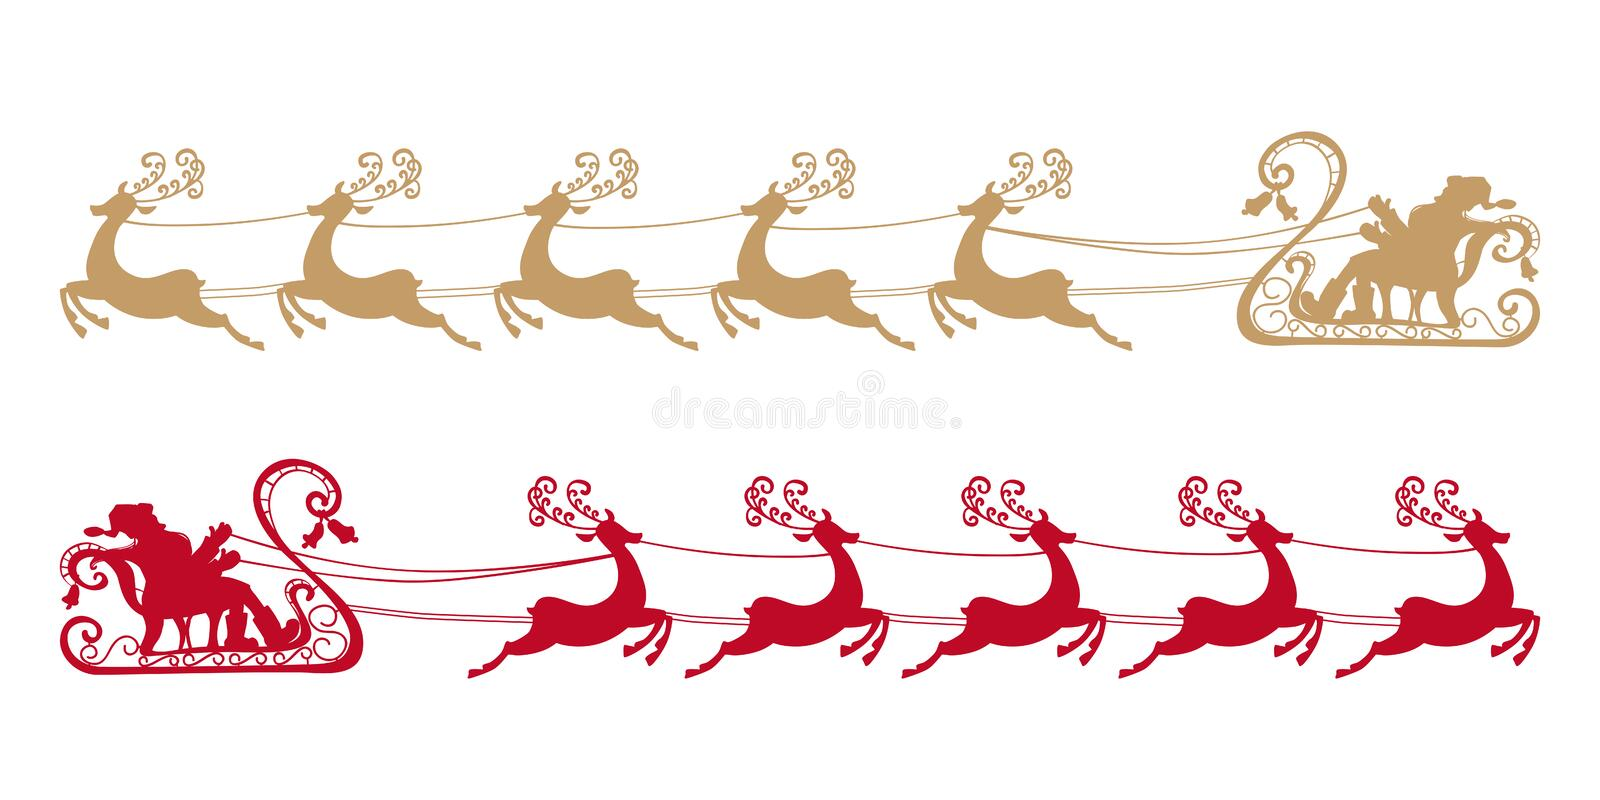 Santa Claus rides in a sleigh in harness royalty free illustration